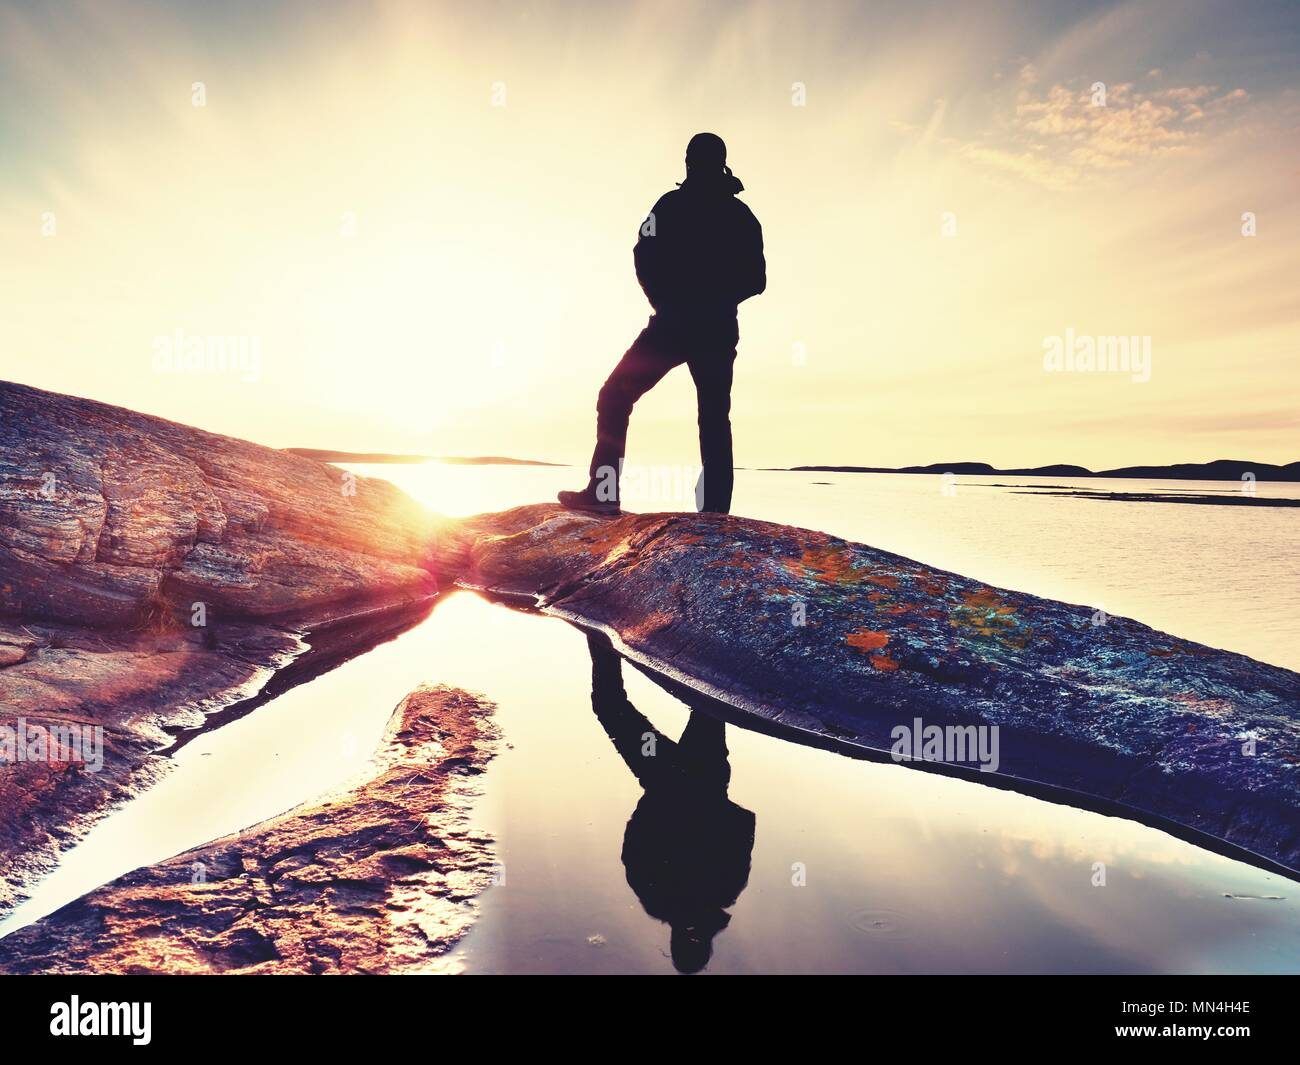 Silhouette of man in outdoor clothes on rocky cliff above sea. Hikerthinking  during sunset in the background. Traveling away concept. - Stock Image